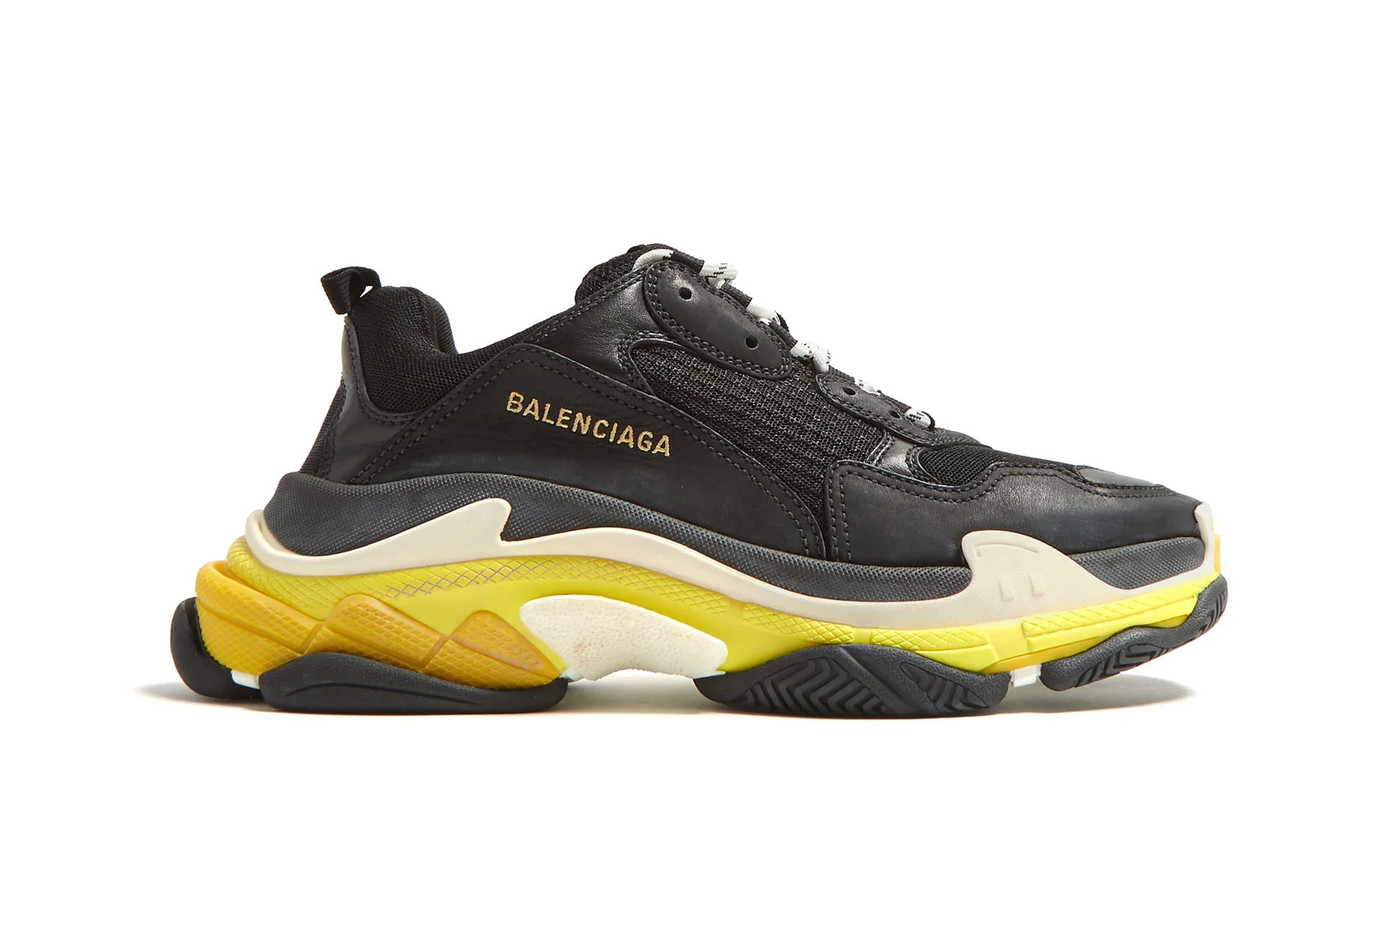 sale retailer 70709 512aa Balenciaga s Triple S Trainer continues its year long run atop the  ever-popular chunky sneaker trend with a new, versatile color combo of  black and yellow.